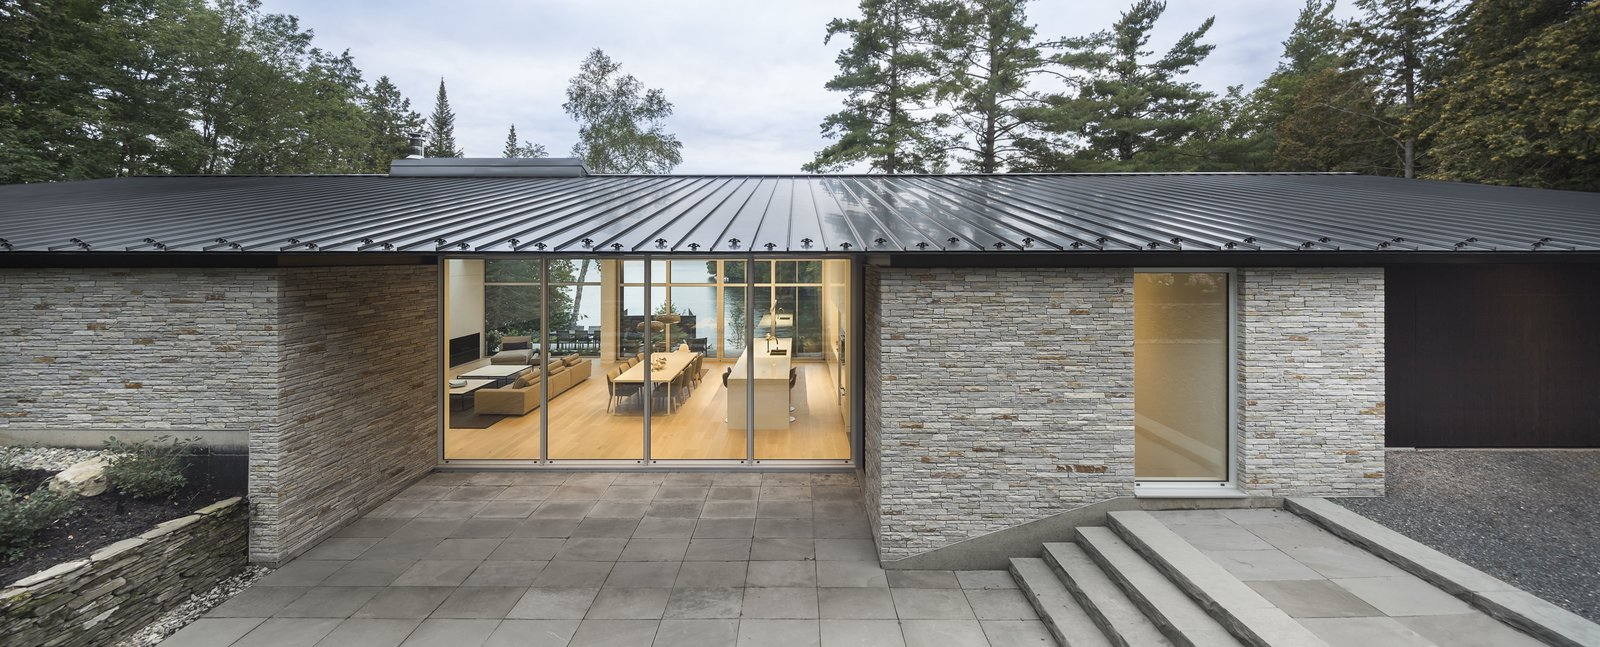 A Lakeside Retreat in Quebec Looks Sharp With a Blade-Like Roof